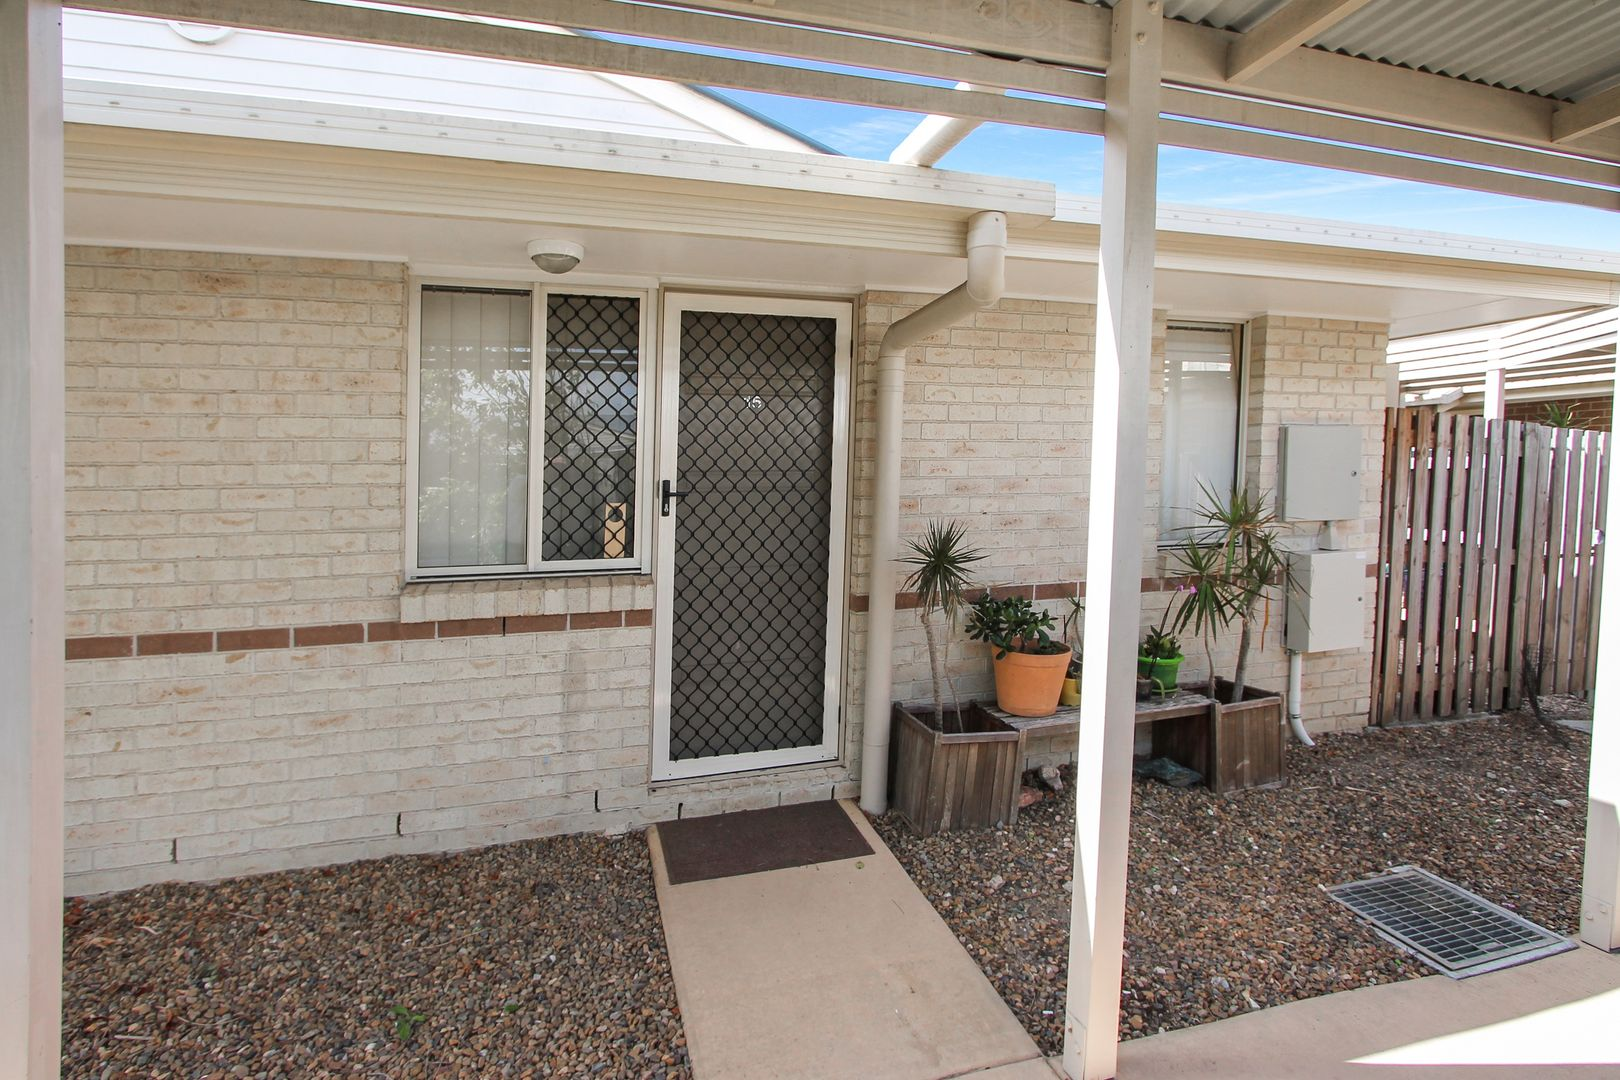 15/71 Stanley Street, Brendale QLD 4500, Image 0